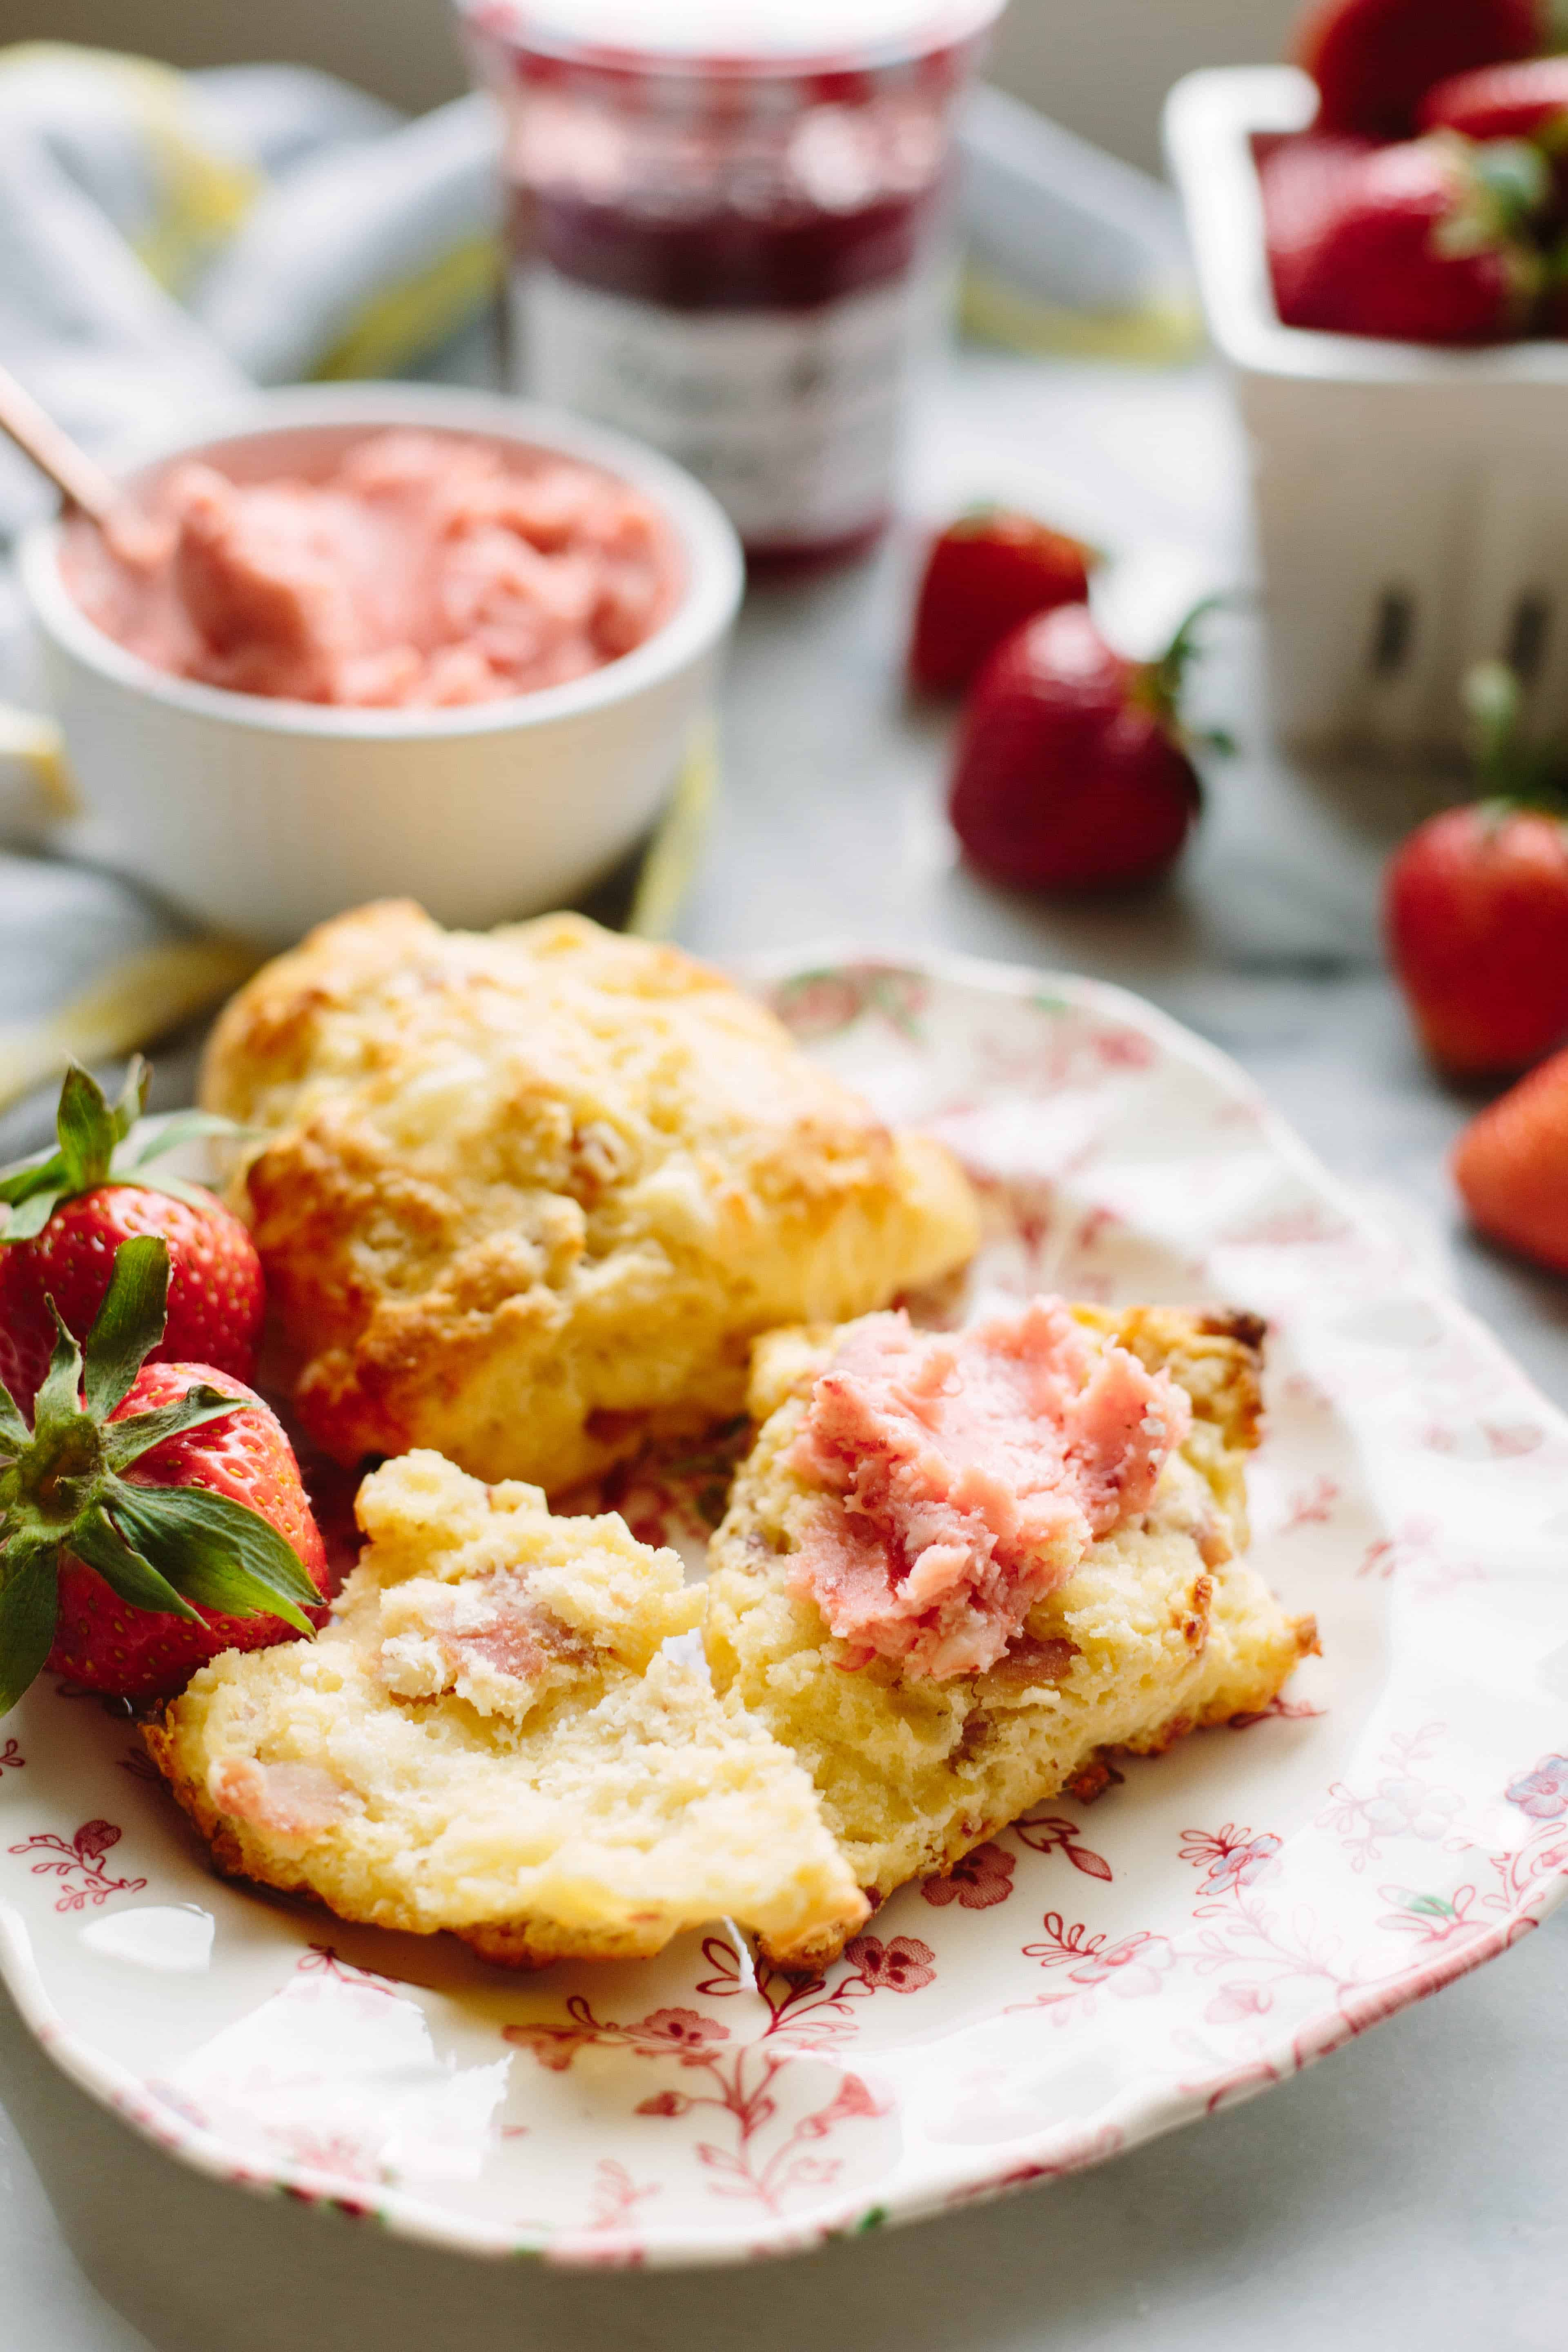 A whole scone and one split open and spread with butter on a small plate with whole strawberries.